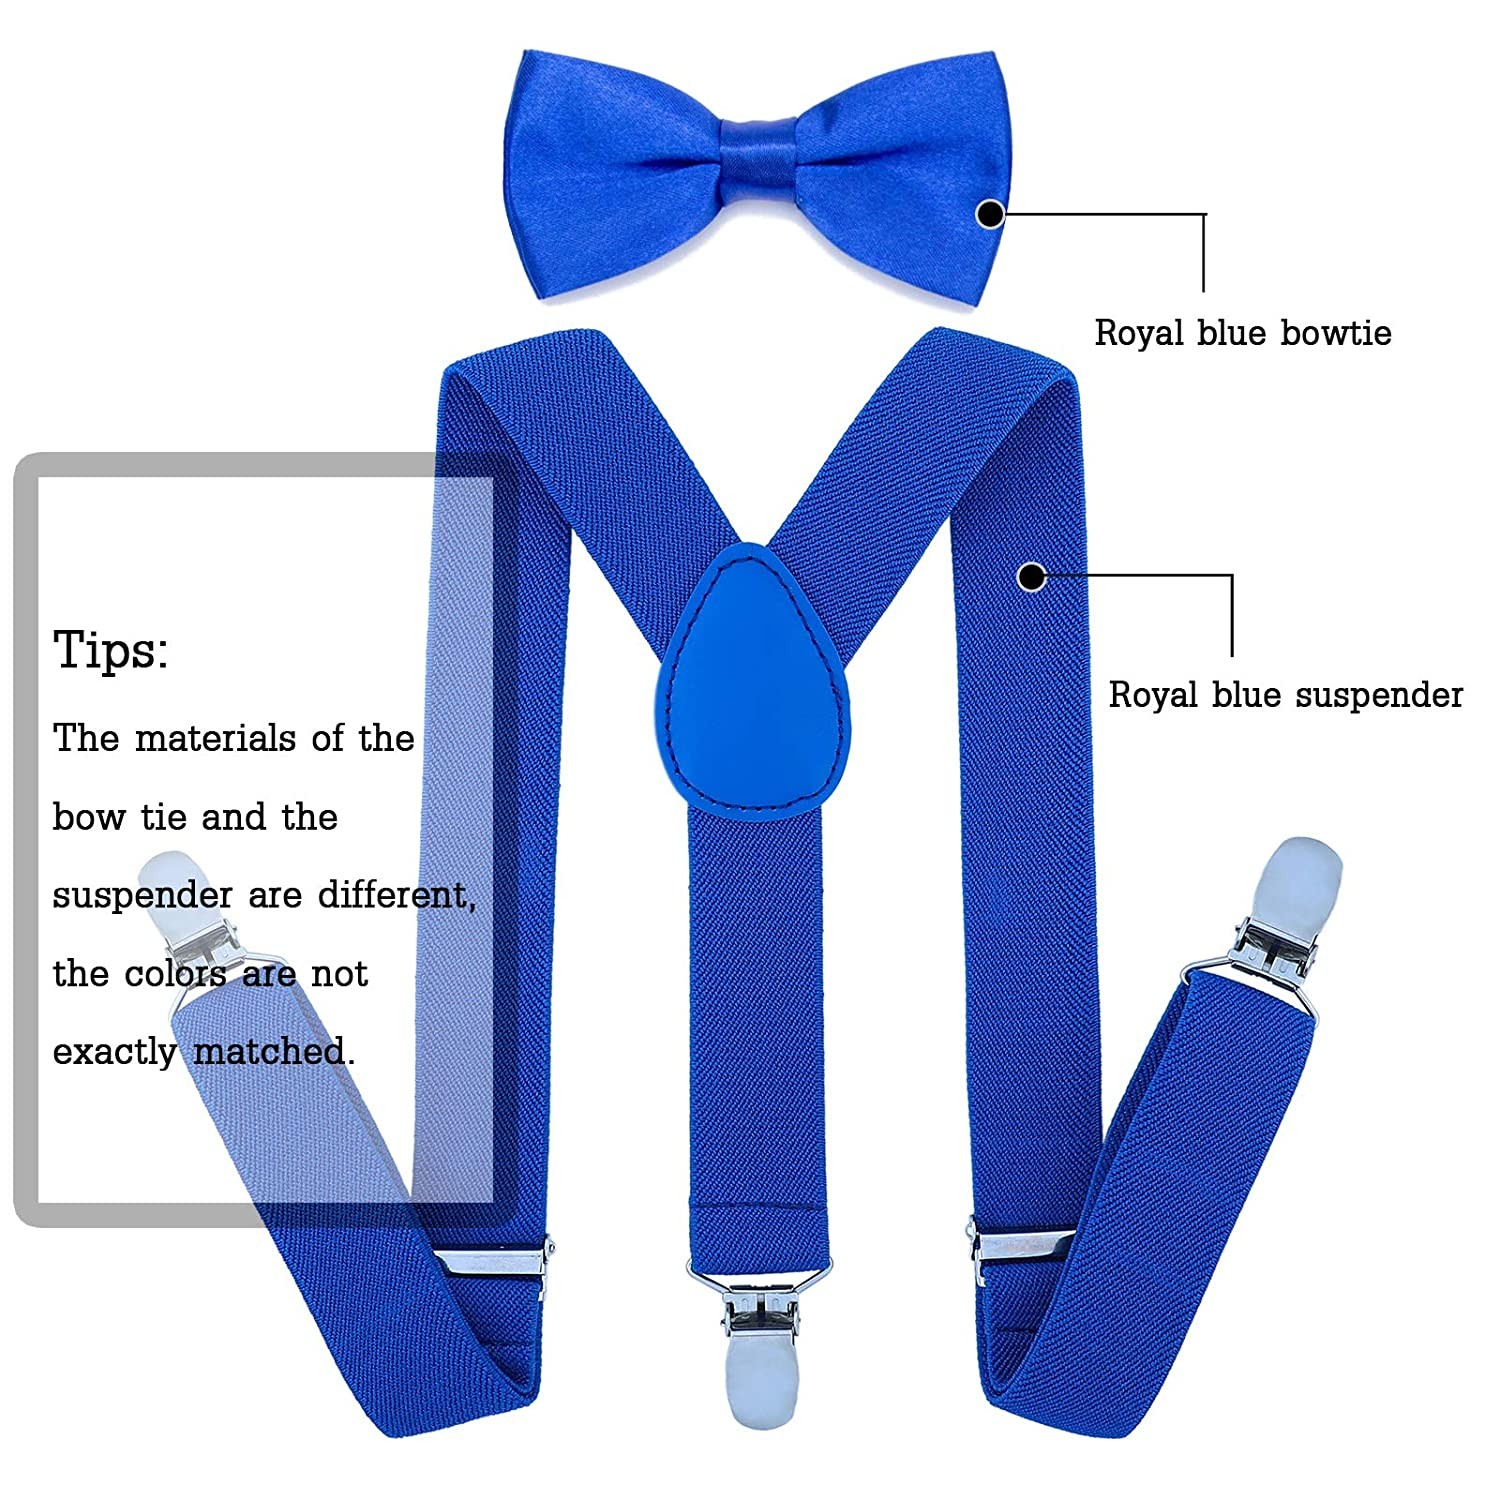 Adjustable Child Suspender for Toddler and Girls 7 Years to 5 Feet Tall Yellow, 31 Inches Kids Boy Suspenders Bowtie Set